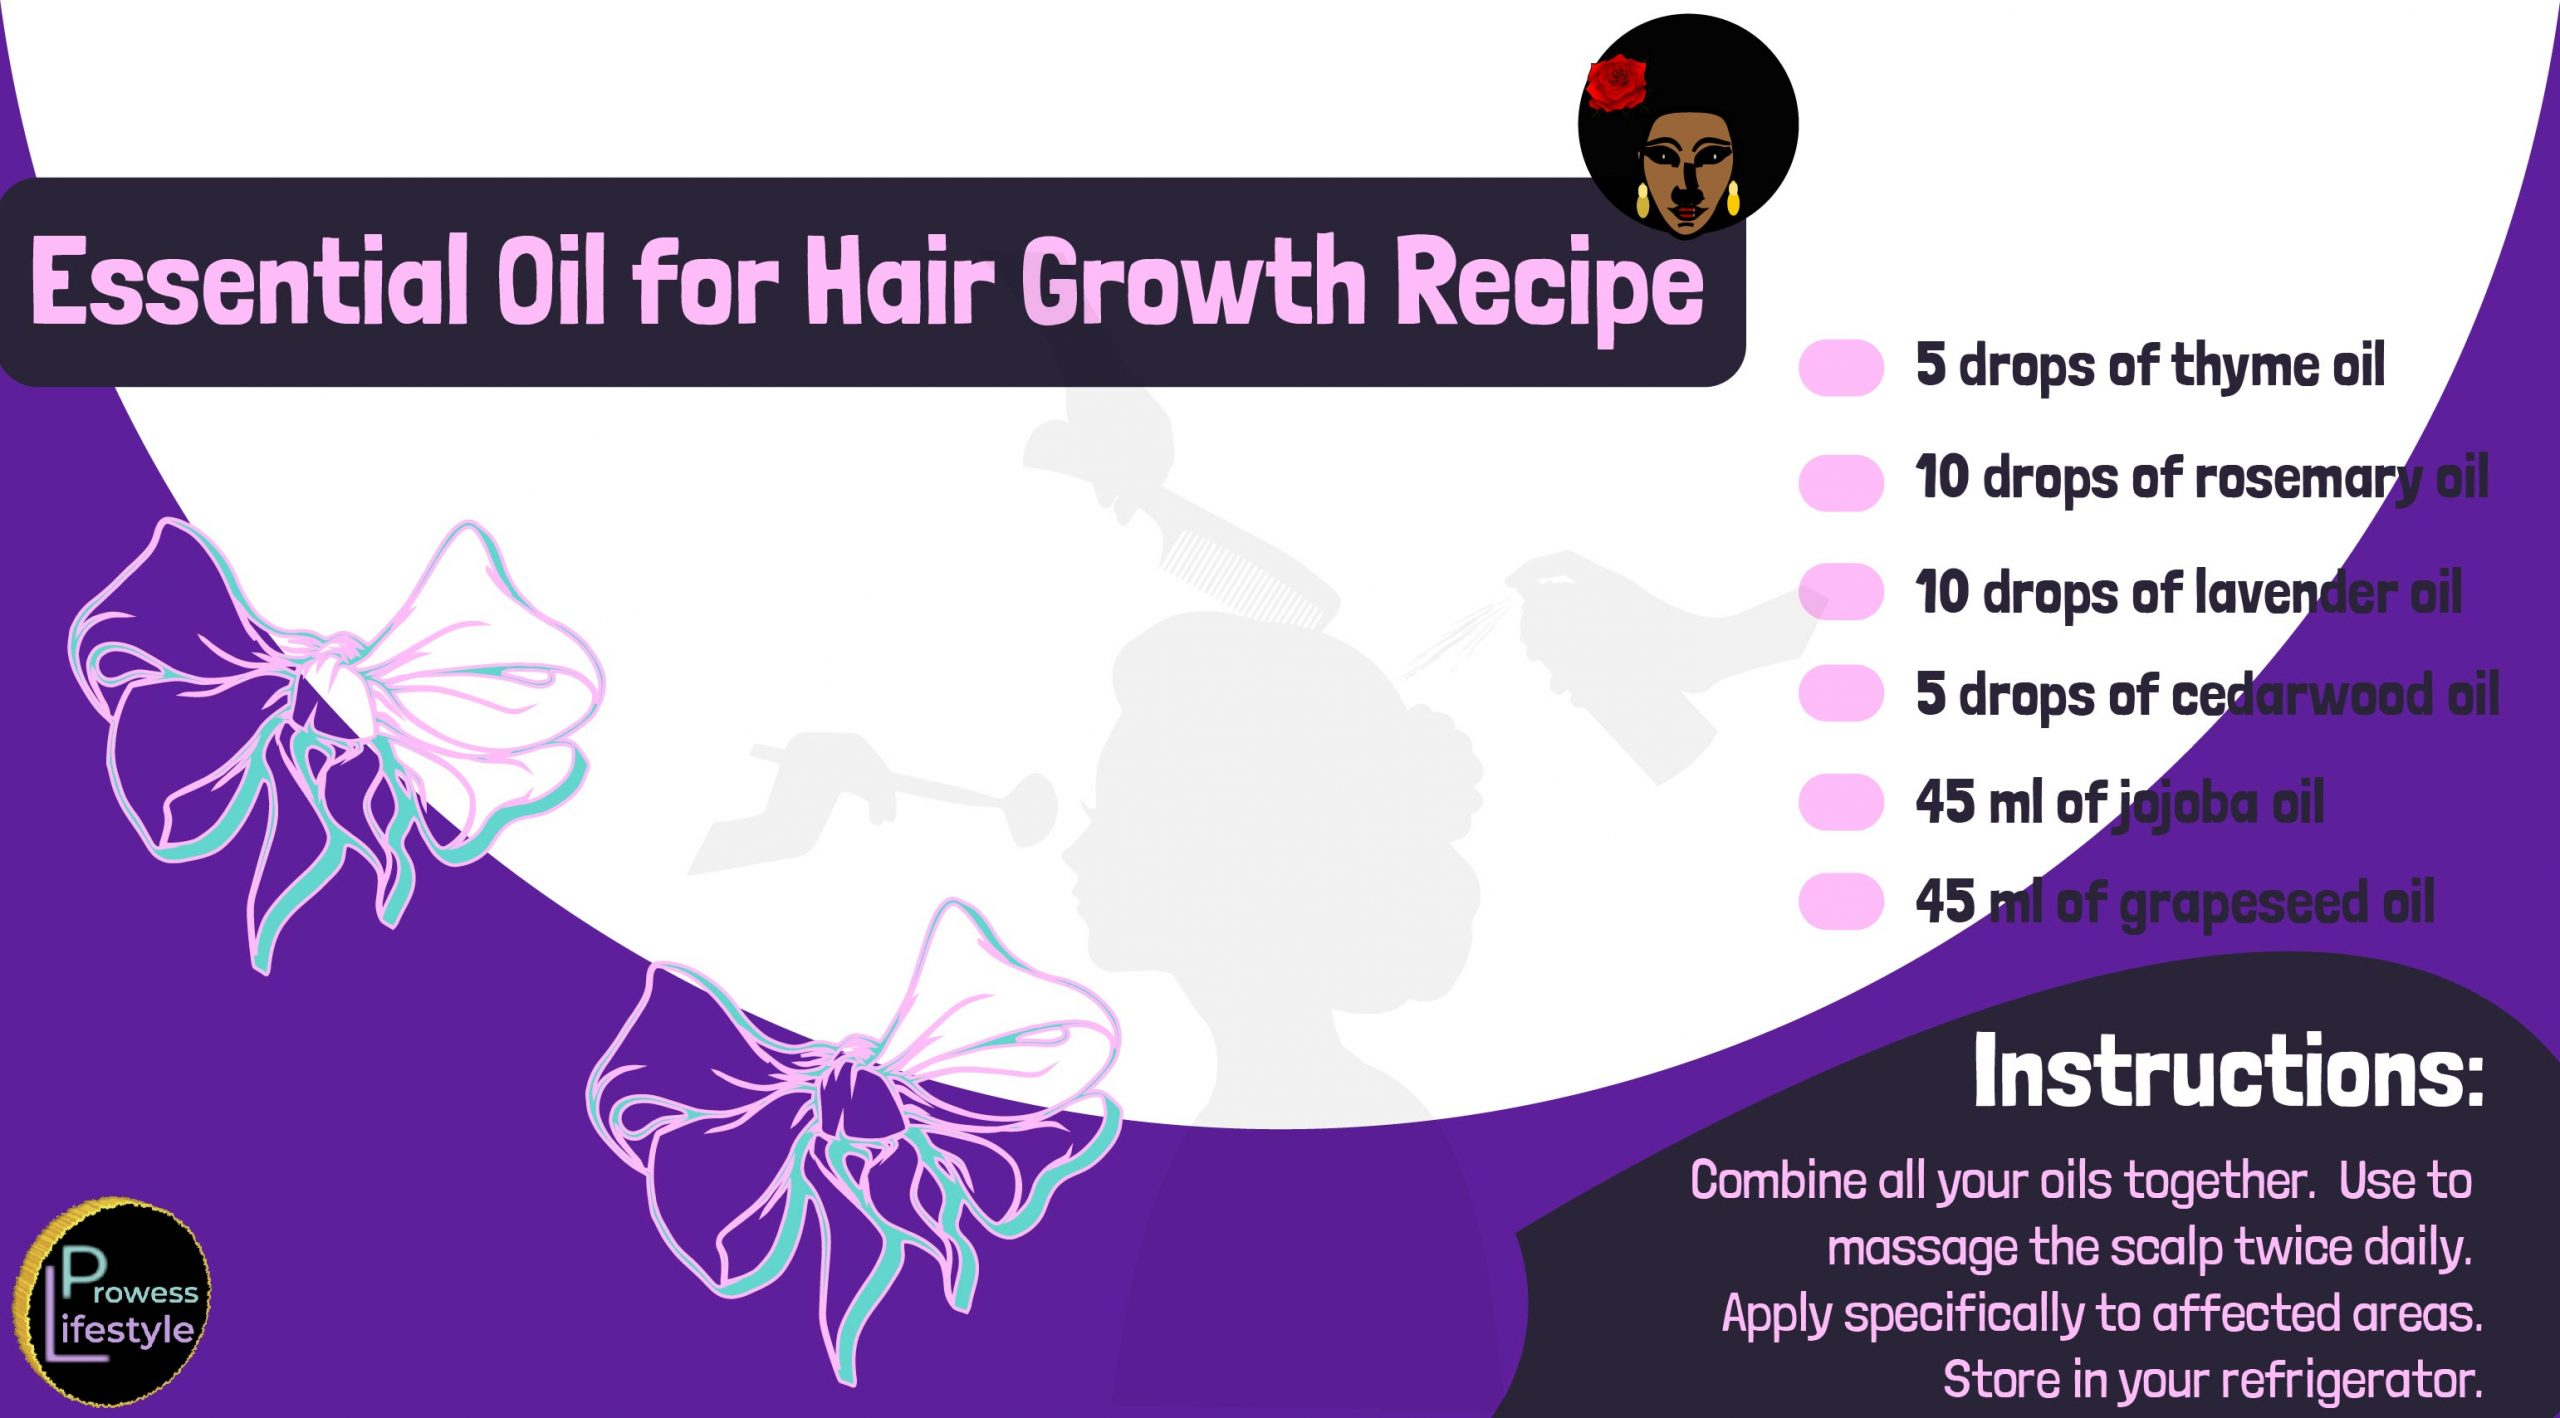 thyme and rosemary essential oil recipe for hair growth